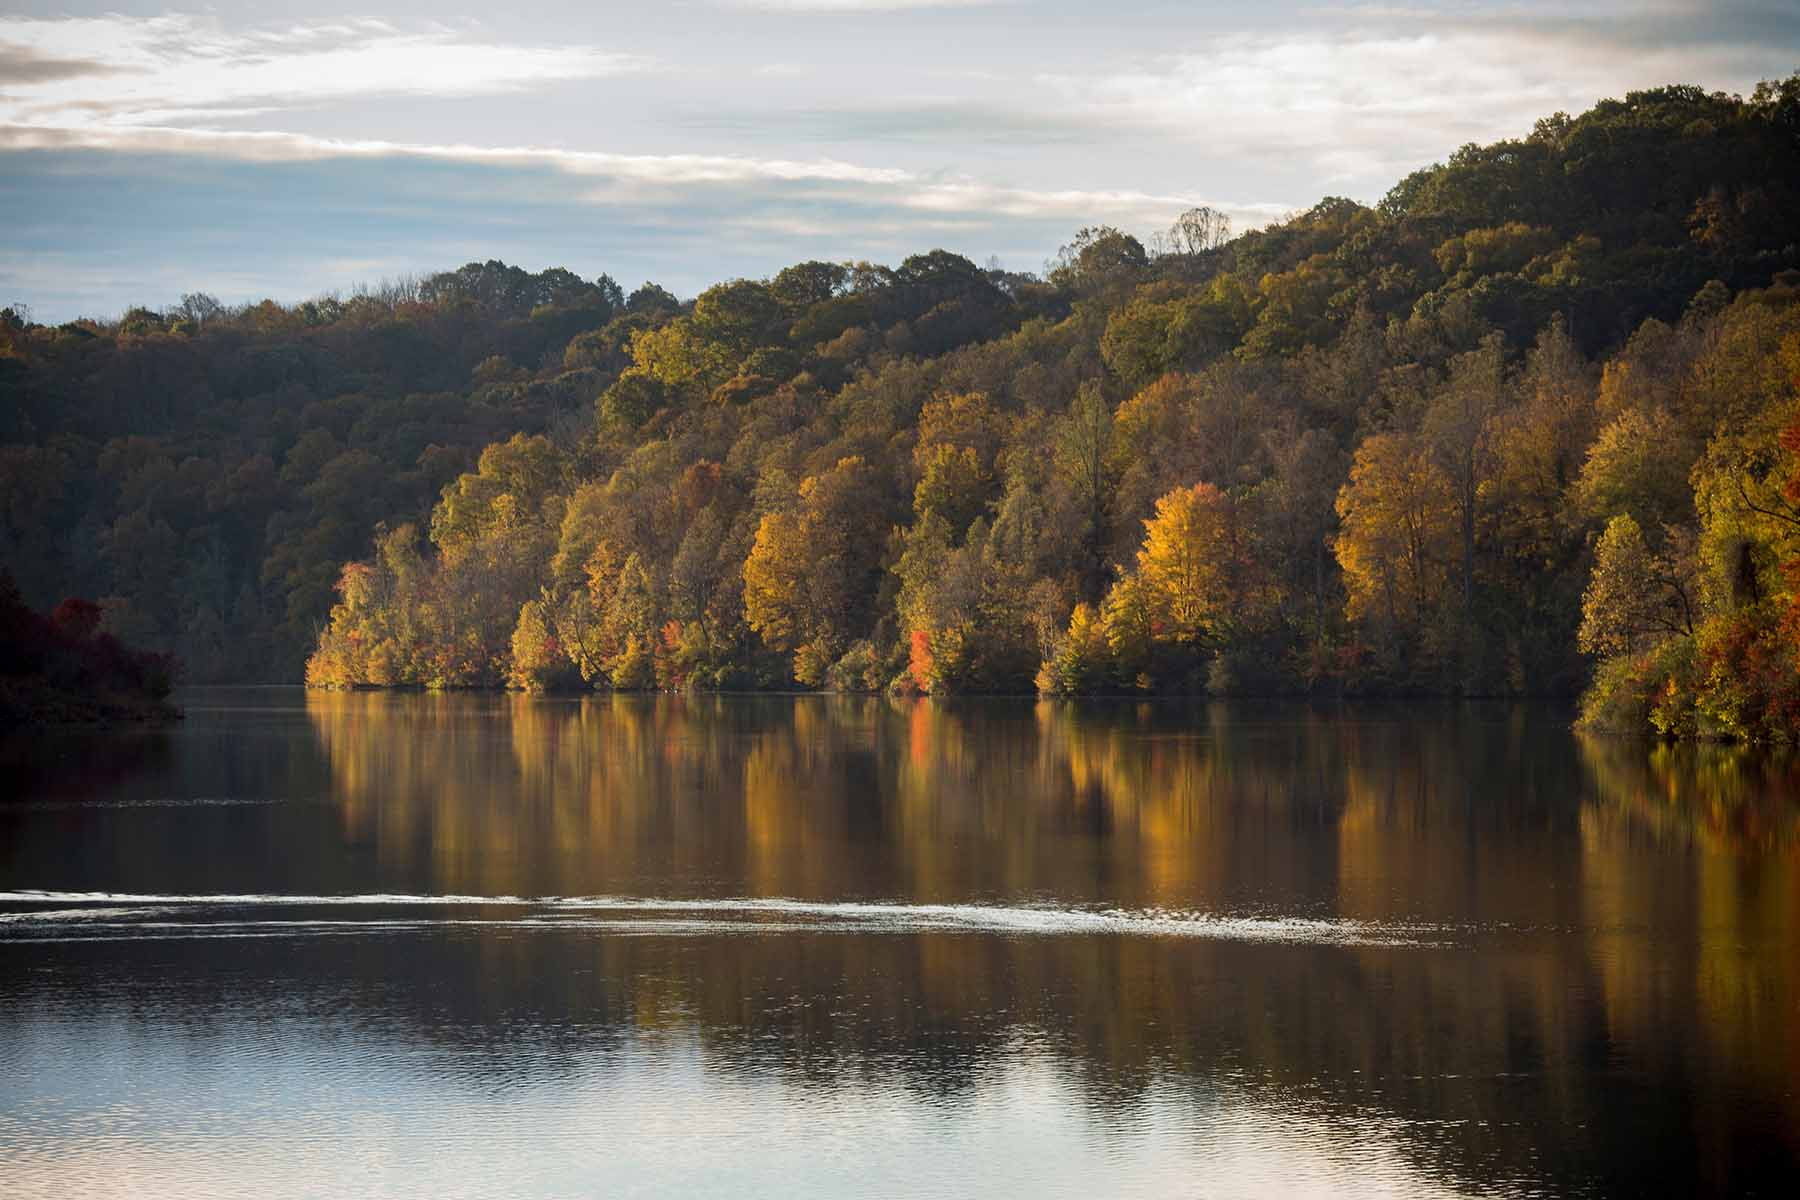 Generic scenic photographs of Fall colors along Dow Lake at Strouds Run State Park in Athens, Ohio on October 29, 2018